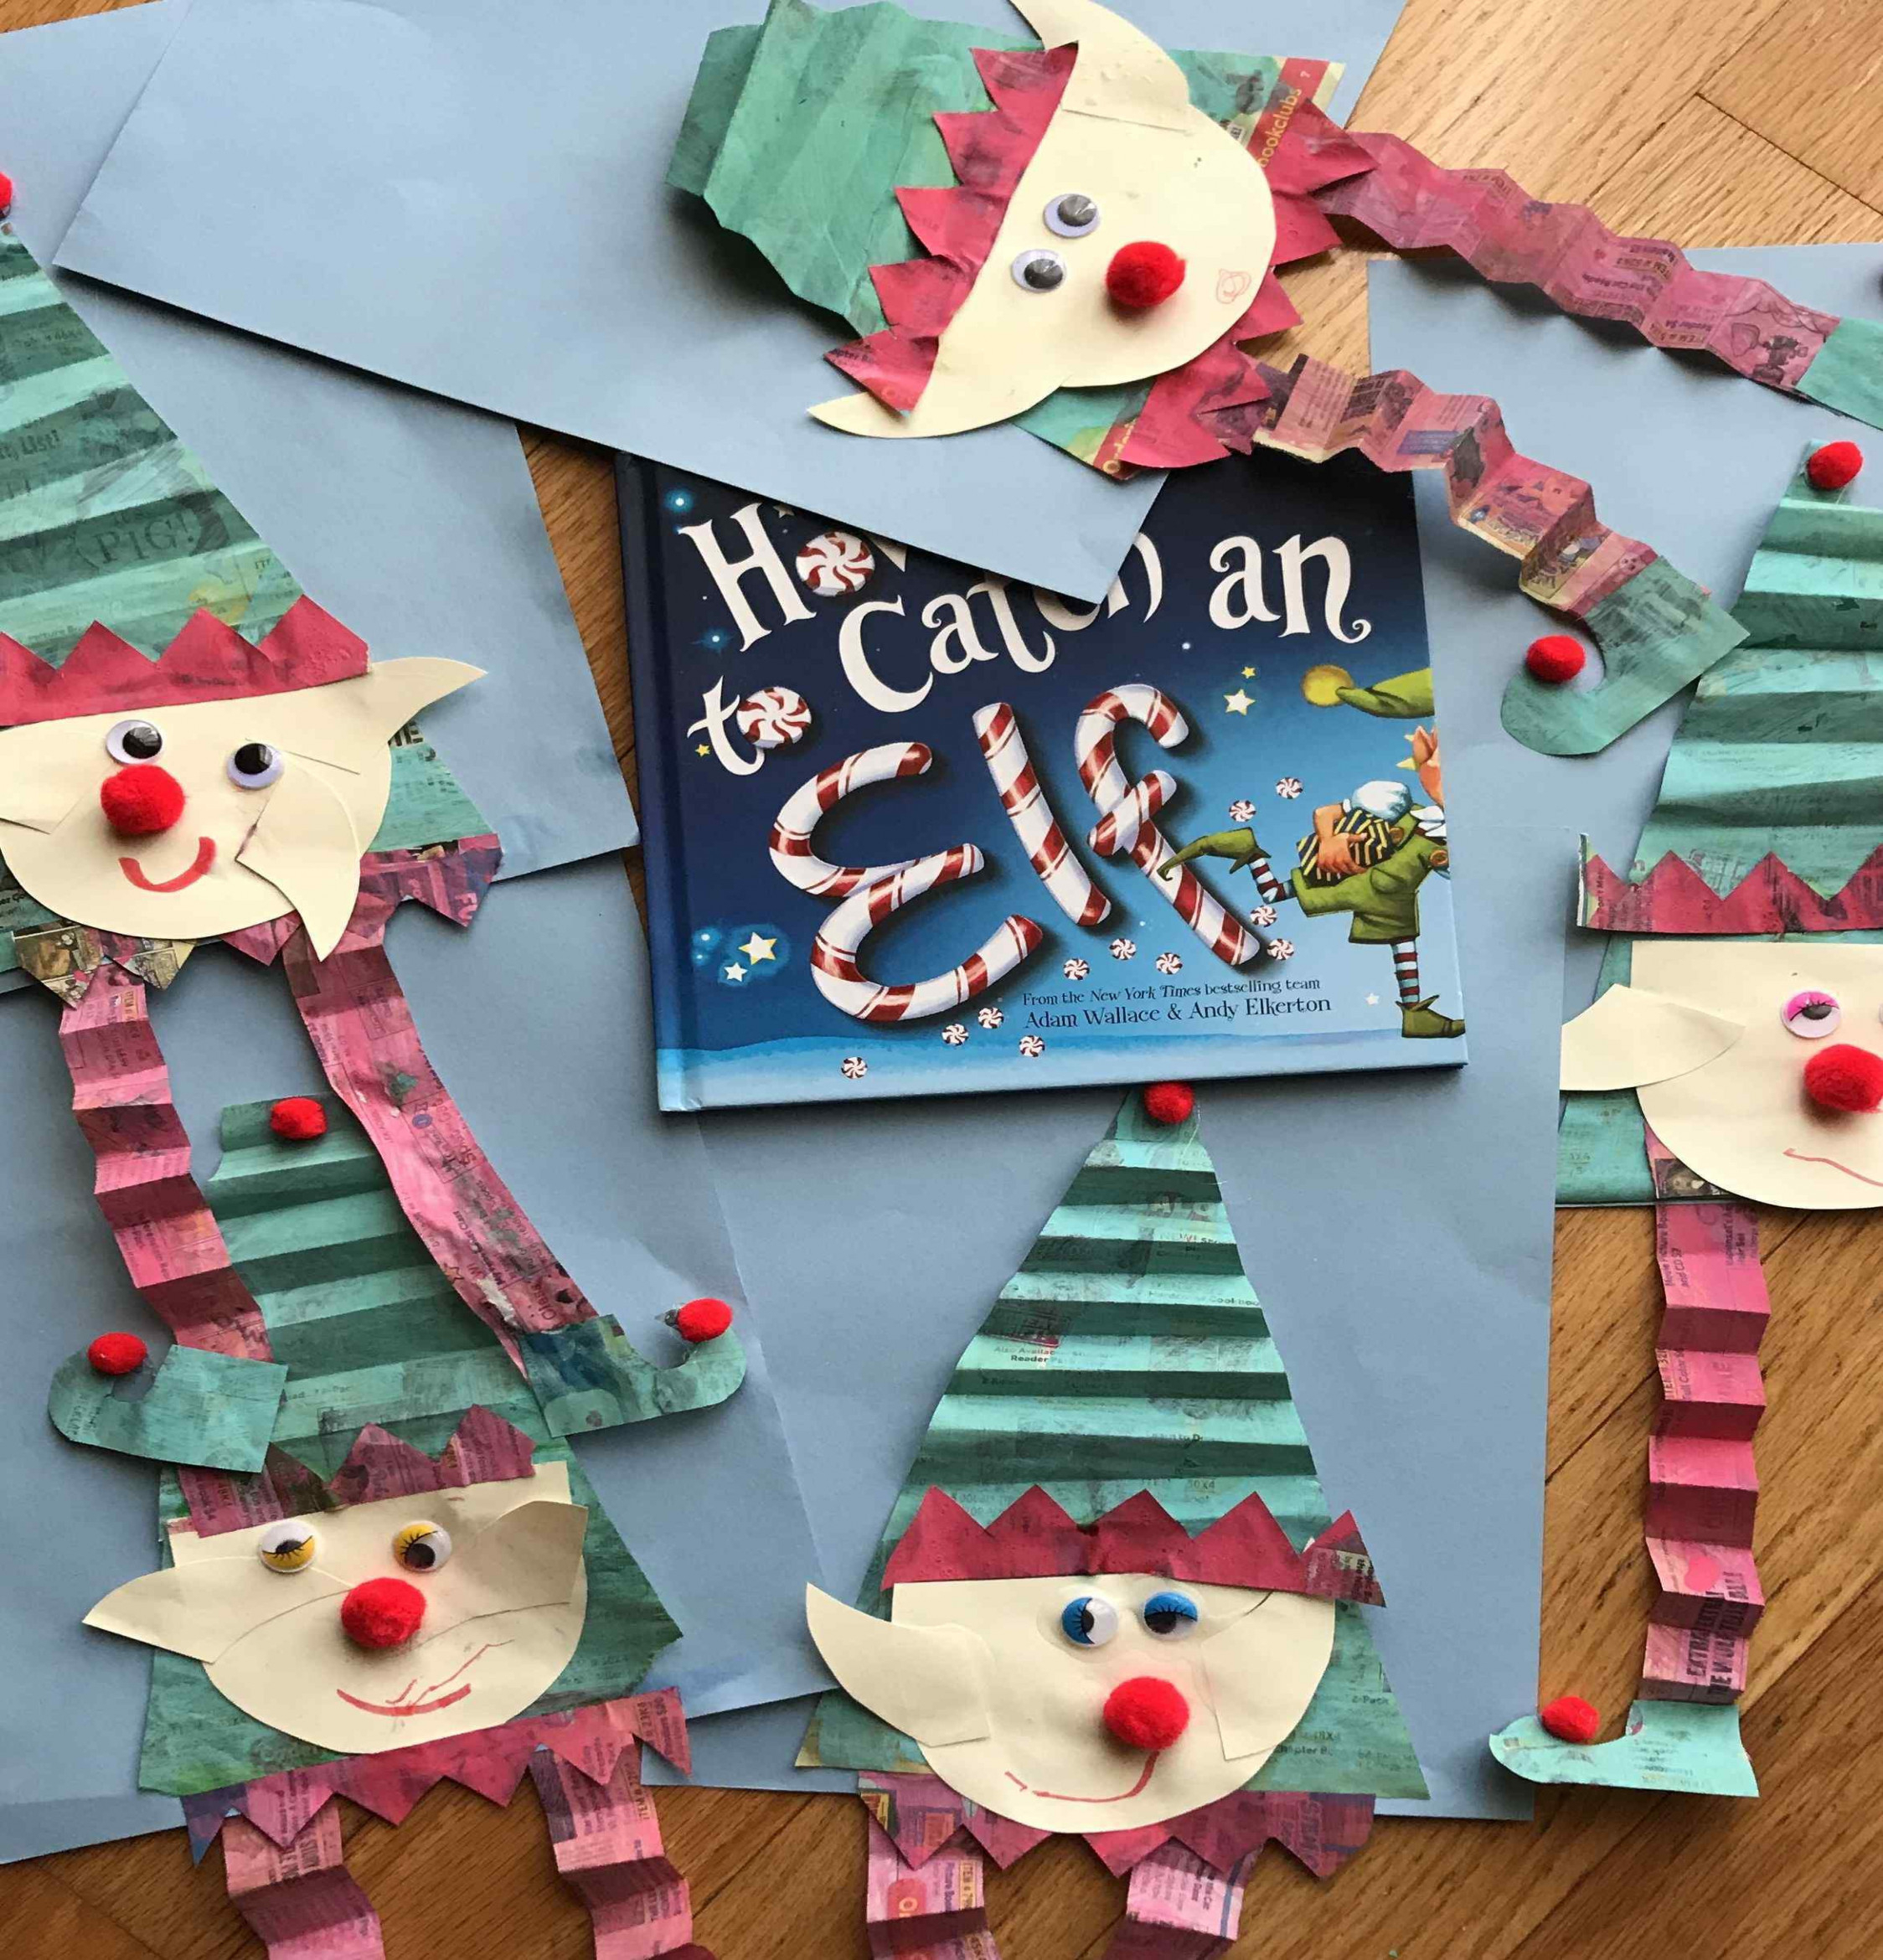 christmas crafts with kids pinterest xmas craft ideas trend elegant